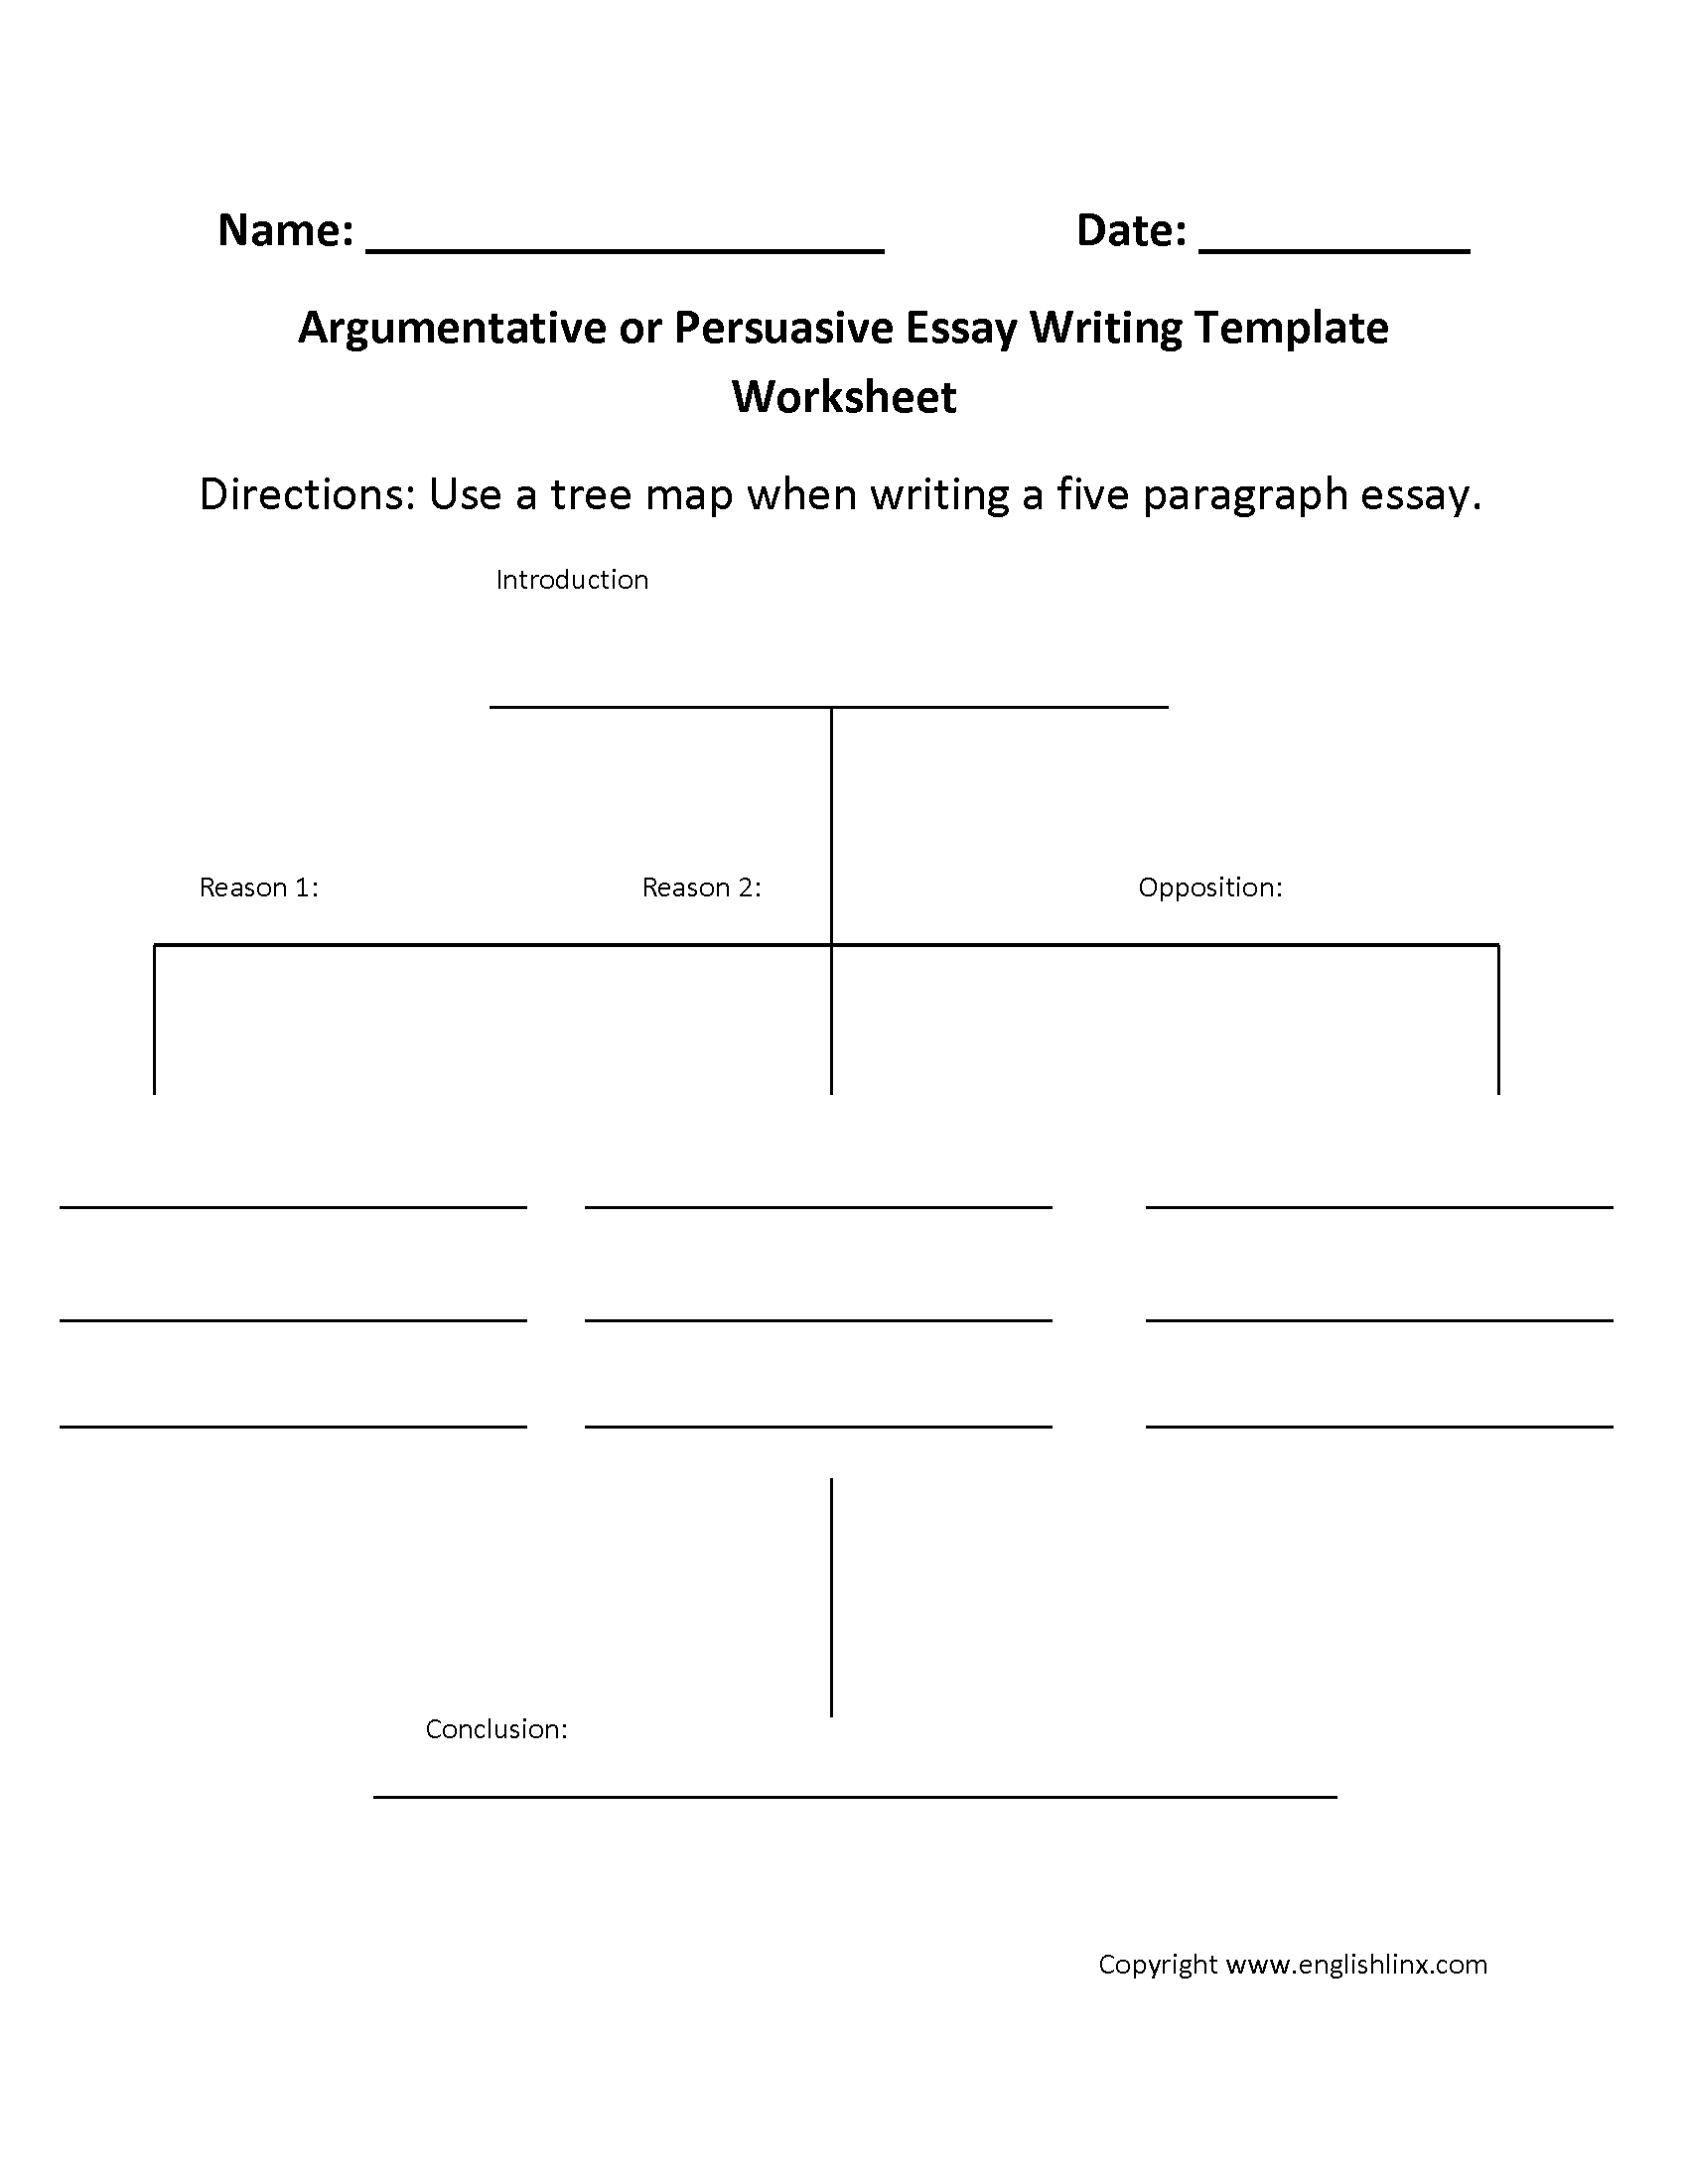 writing template worksheets argumentative writing template worksheet argumentative writing template worksheet